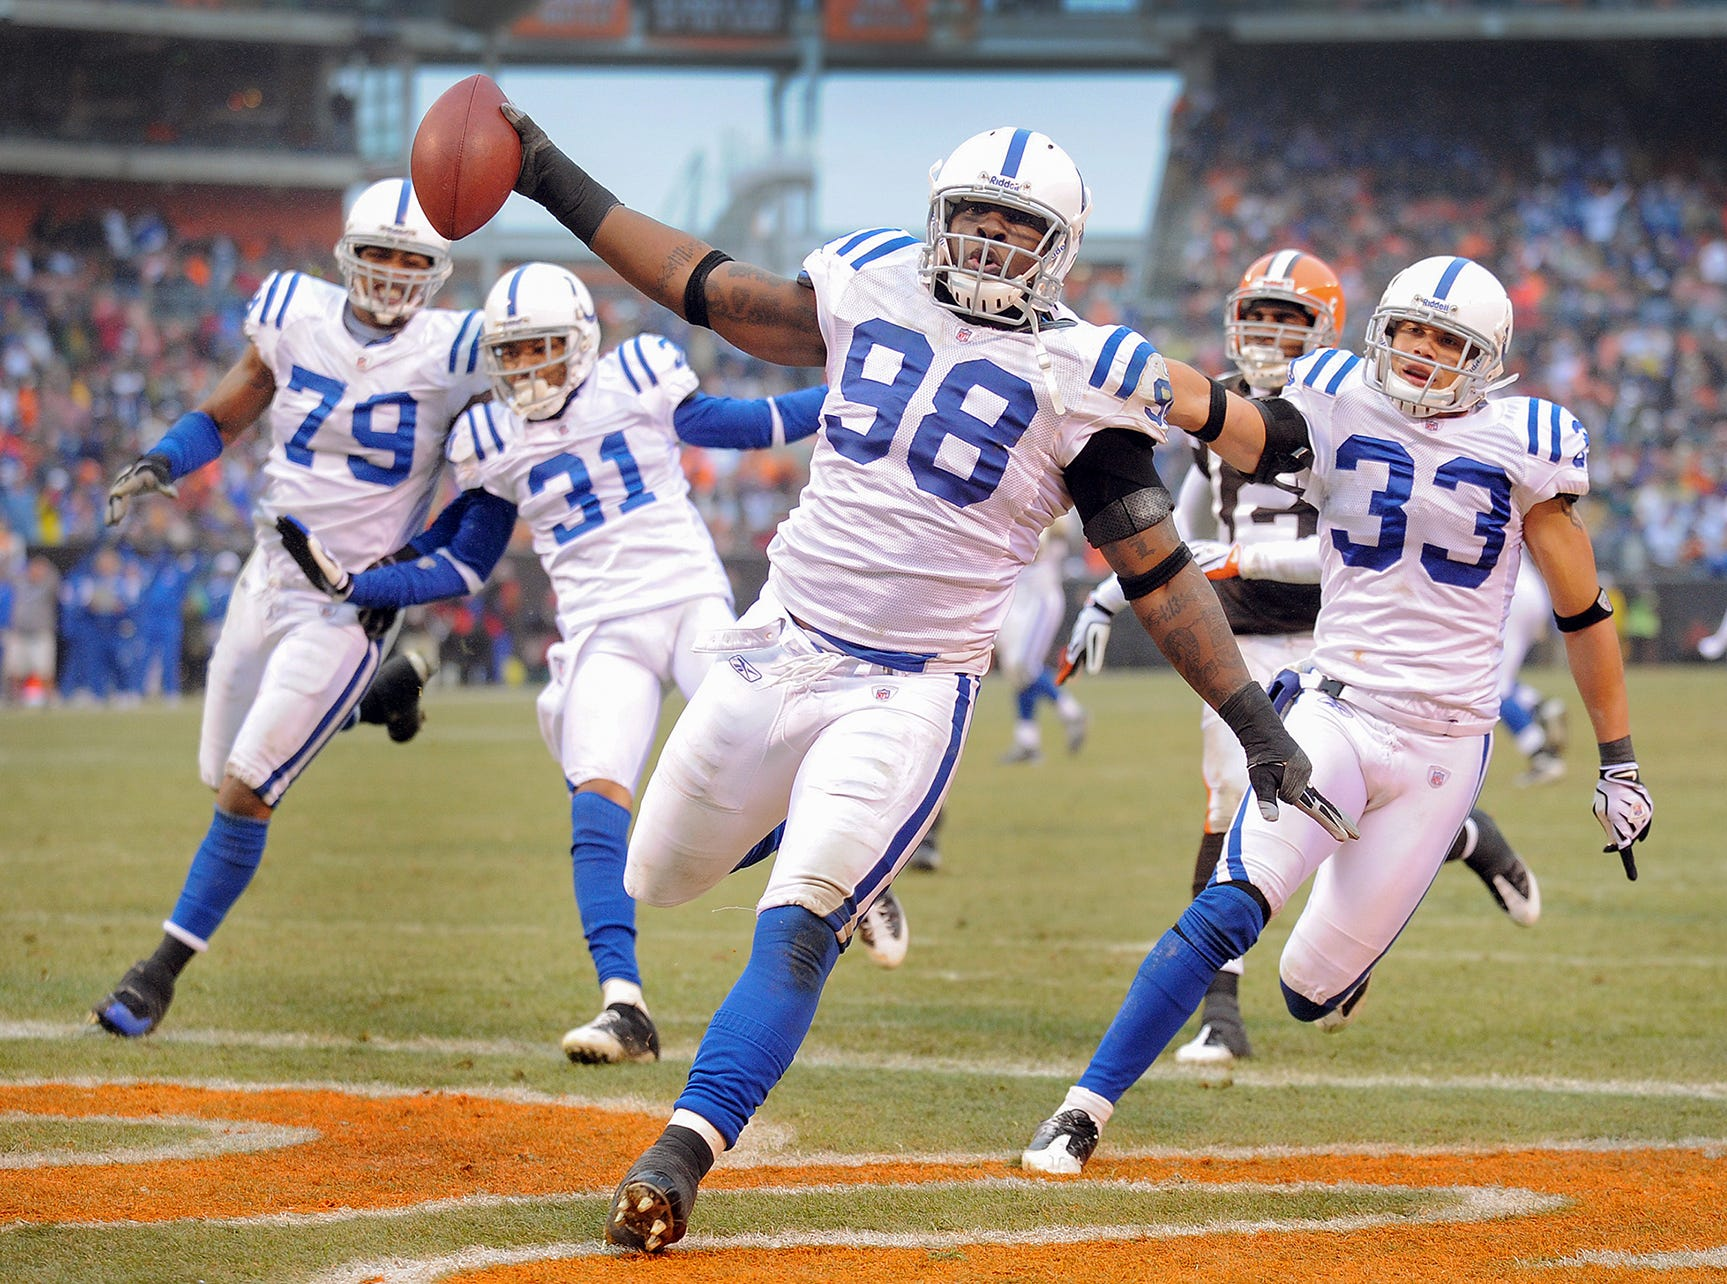 Indianapolis Colts Robert Mathis (#98) scores the game winning touchdown in the fourth of their game Sunday at Cleveland Browns Stadium in Cleveland OH. on November 30, 2008.